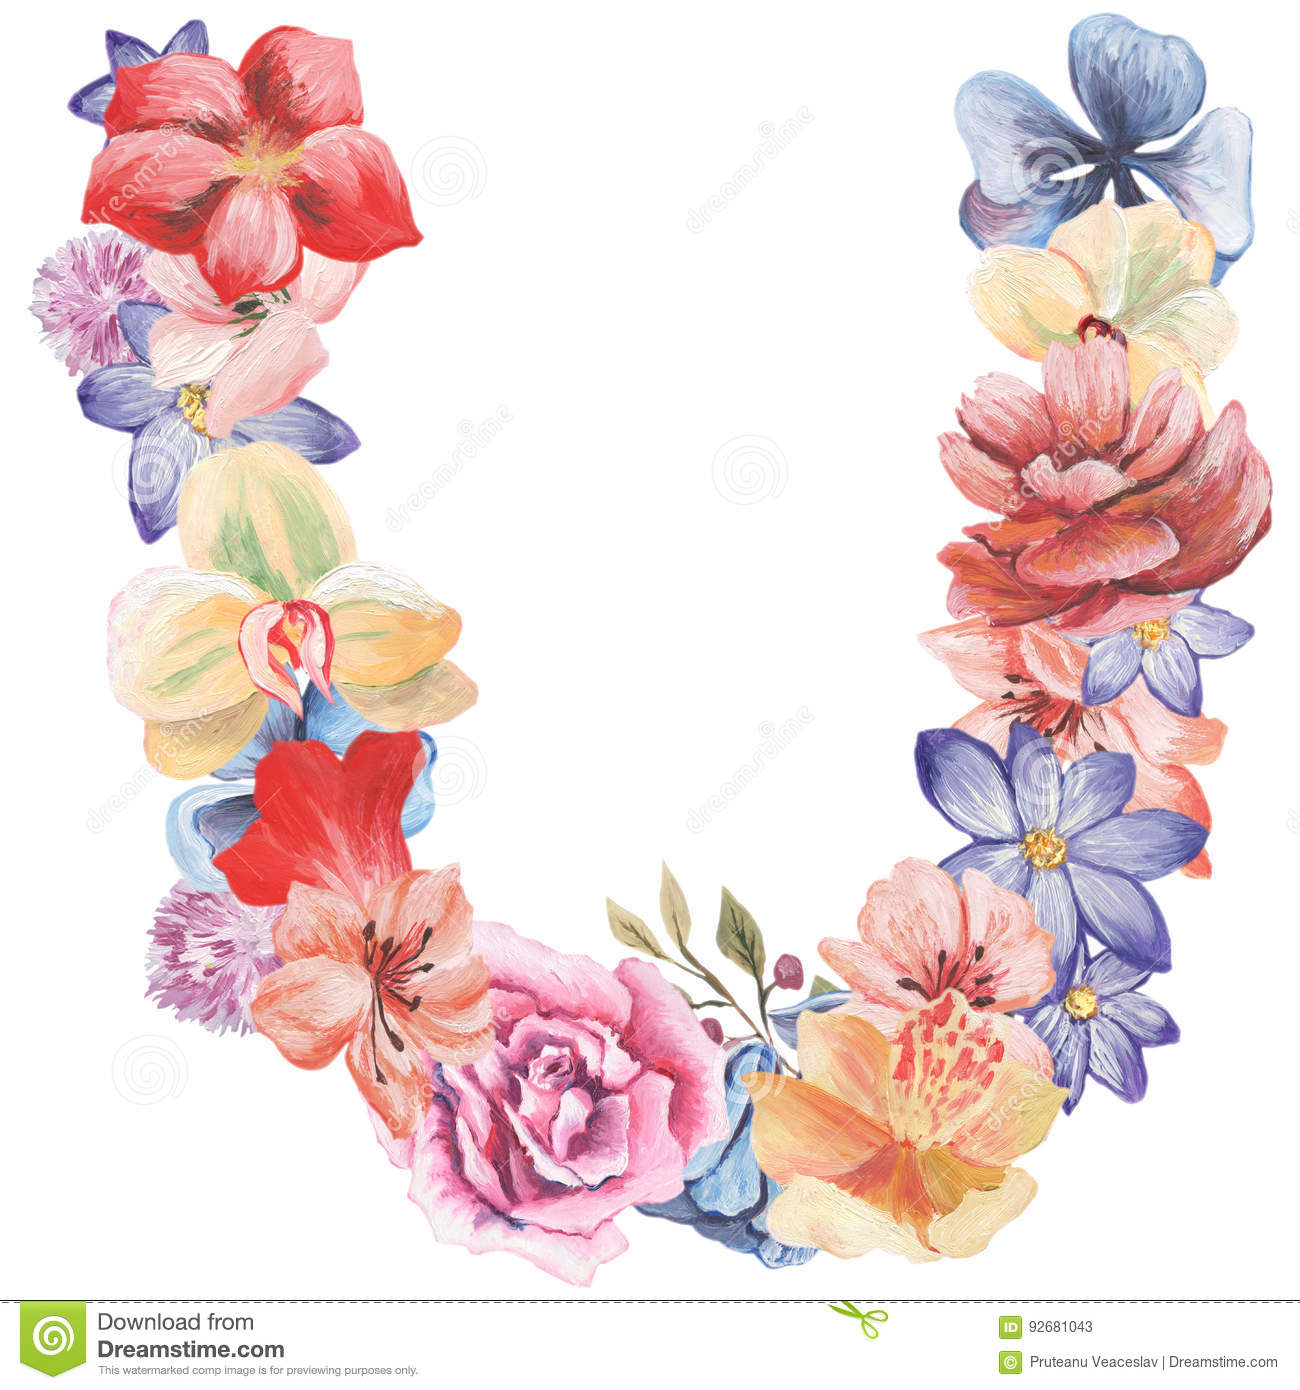 letter u of watercolor flowers isolated hand drawn on a white background wedding design